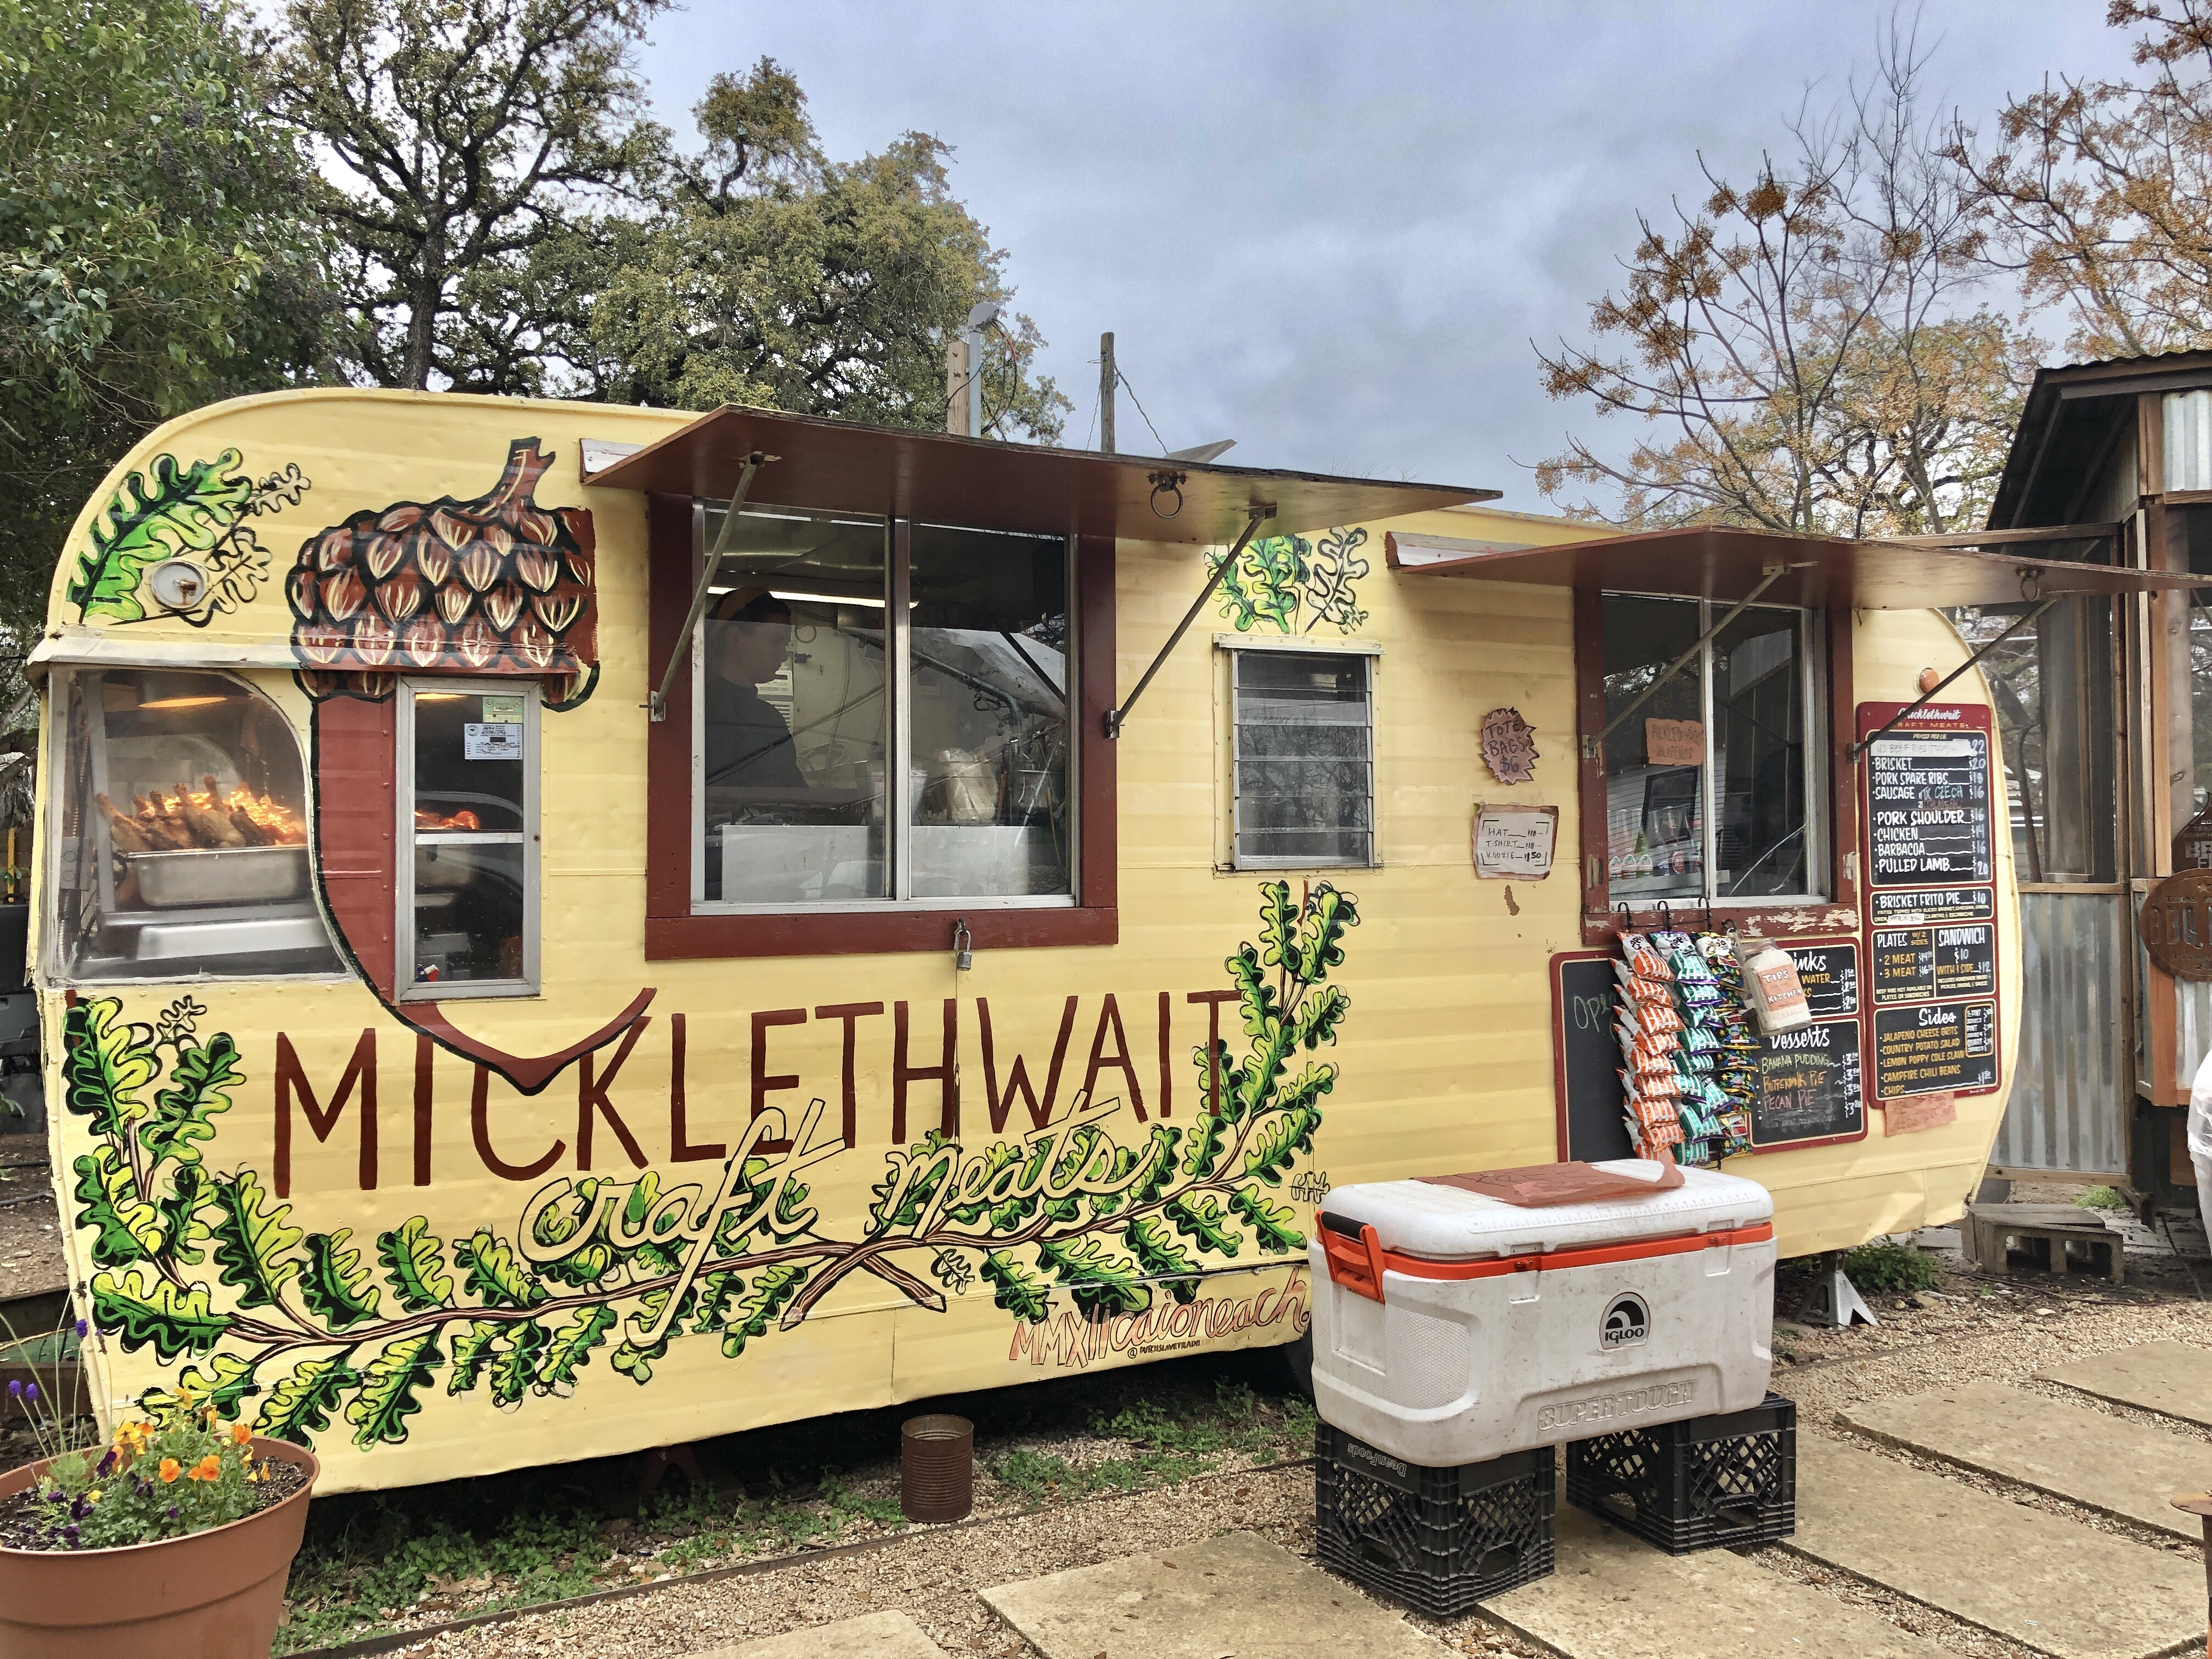 Micklethwait Craft Meats barbecue truck in Austin, Texas